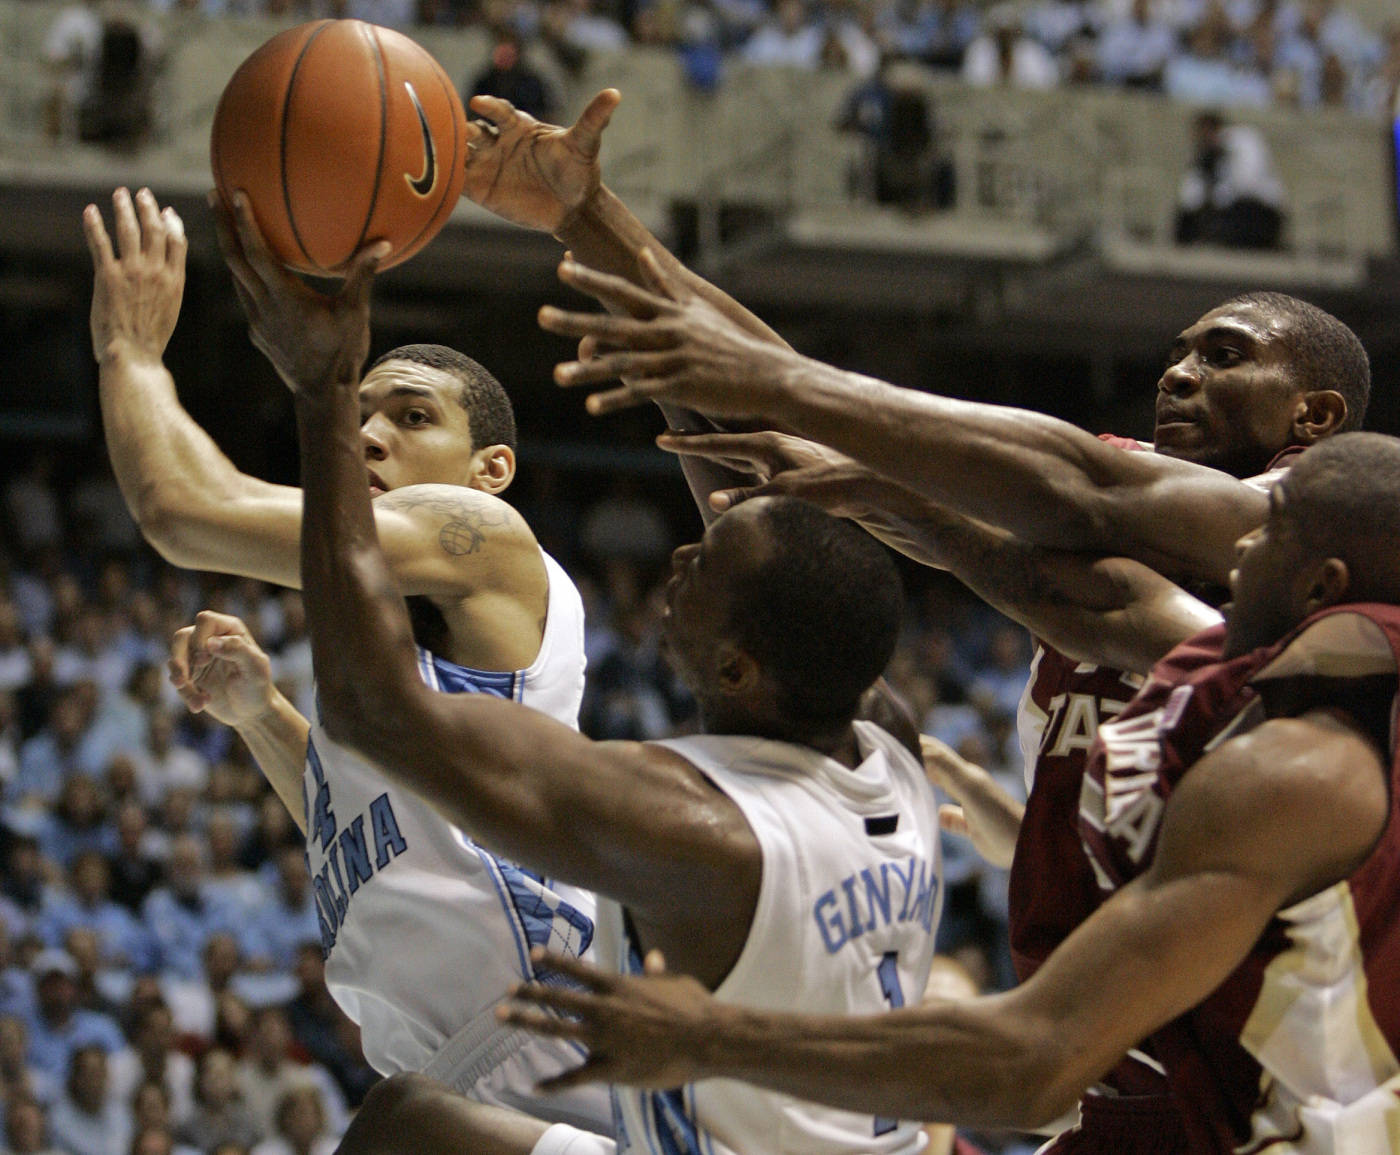 North Carolina's Danny Green, left, and Marcus Ginyard battle with Florida State's Uche Echefu and Jason Rich, right, for a rebound during the first half of a college basketball game in Chapel Hill, N.C., Tuesday, March 4, 2008. (AP Photo/Gerry Broome)